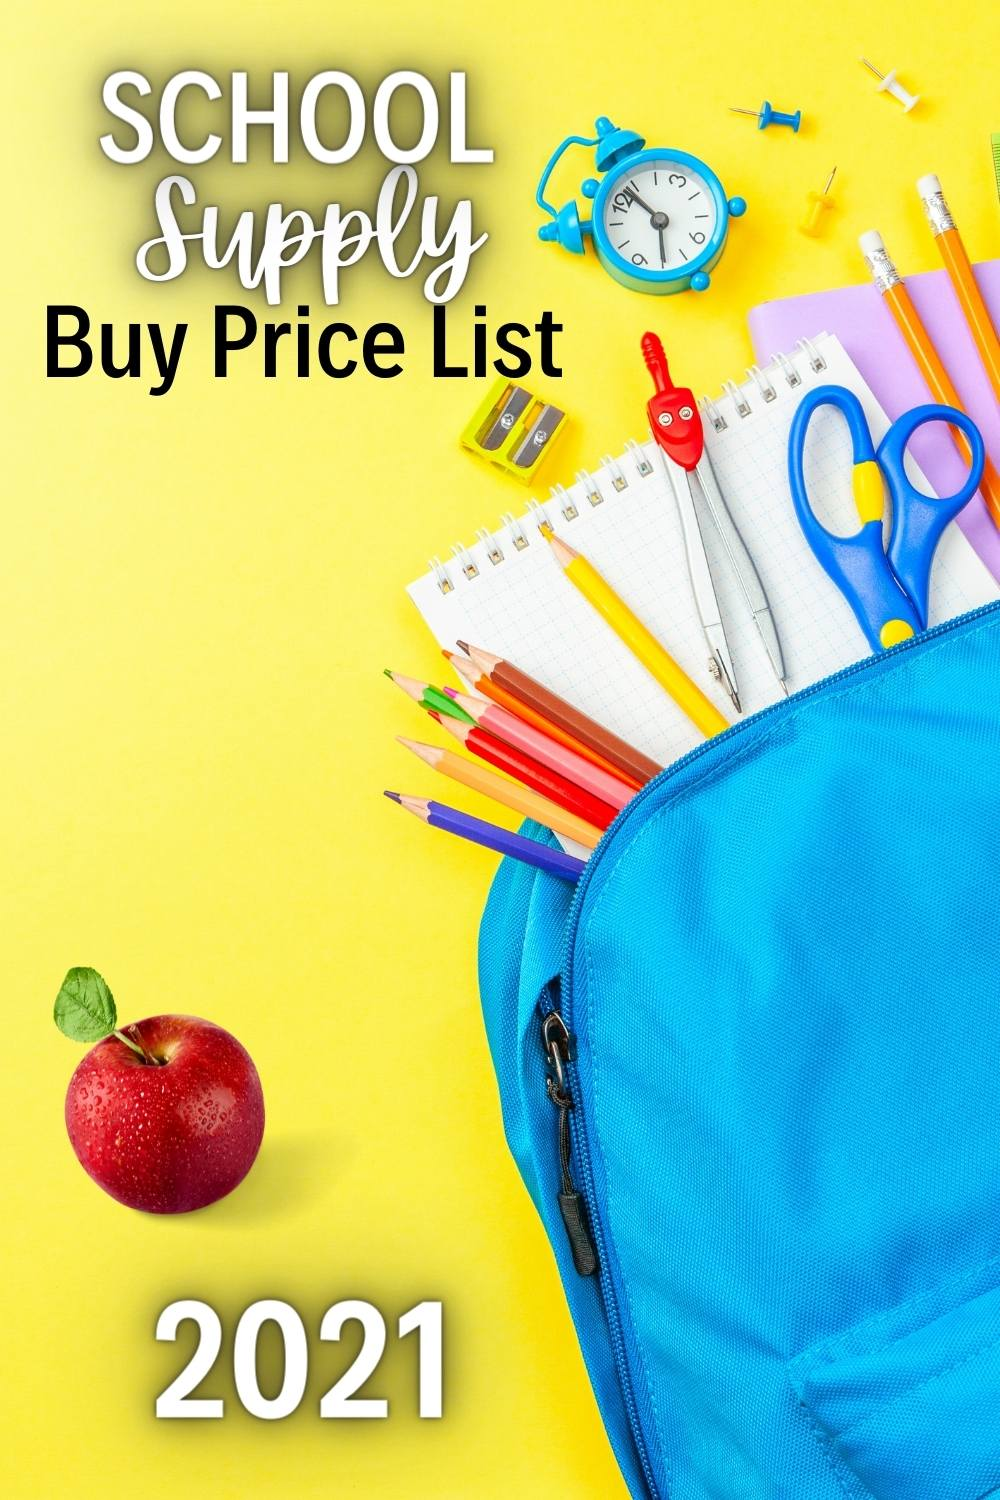 It's officially time to be the hunt for school supplies! This school supplies buy price list should help you make sure you get the best deal (and ignore the not-so-great ones)!